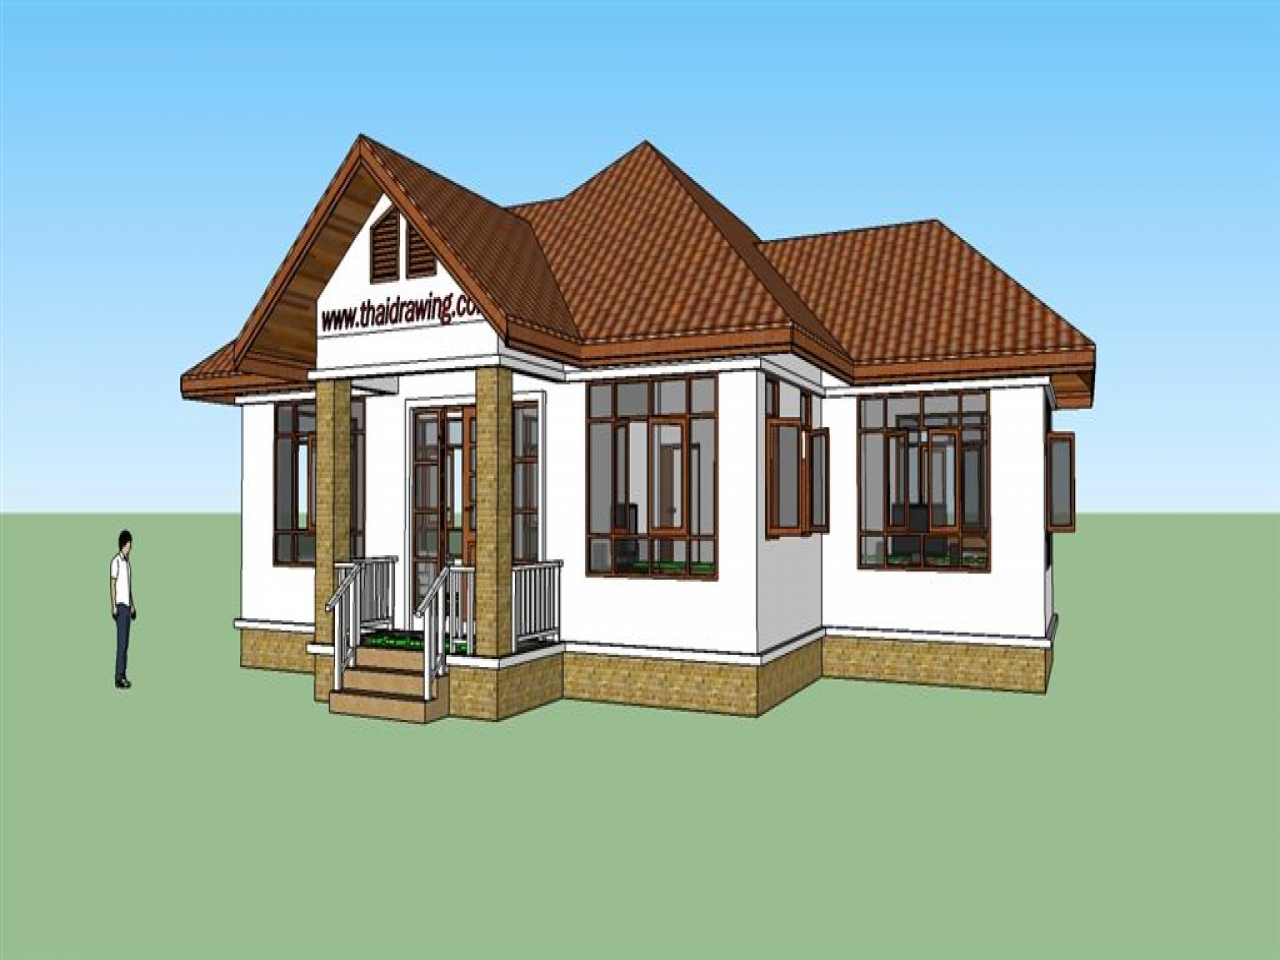 thai-house-in-thailand-thai-house-plans-free-lrg-e1ec1fc0fe1d7dbf Design Small Cottage Houses Sims on sims 3 cottage garden, sims 3 living room sets, sims 3 small houses, sims 3 interior design ideas, sims 3 building ideas, sims 3 pets houses, sims 3 cabin, sims 3 custom content houses, sims 3 modern cottage, sims 3 apartment, grey cottage house, sims 3 fireplace, sims 3 mini fridge, sims 3 cheats, sims 2 house ideas, sims 3 forest, sims house plans cottage, sims 4 bungalow house, sims 2 cottage house, sims 3 cottage plans,